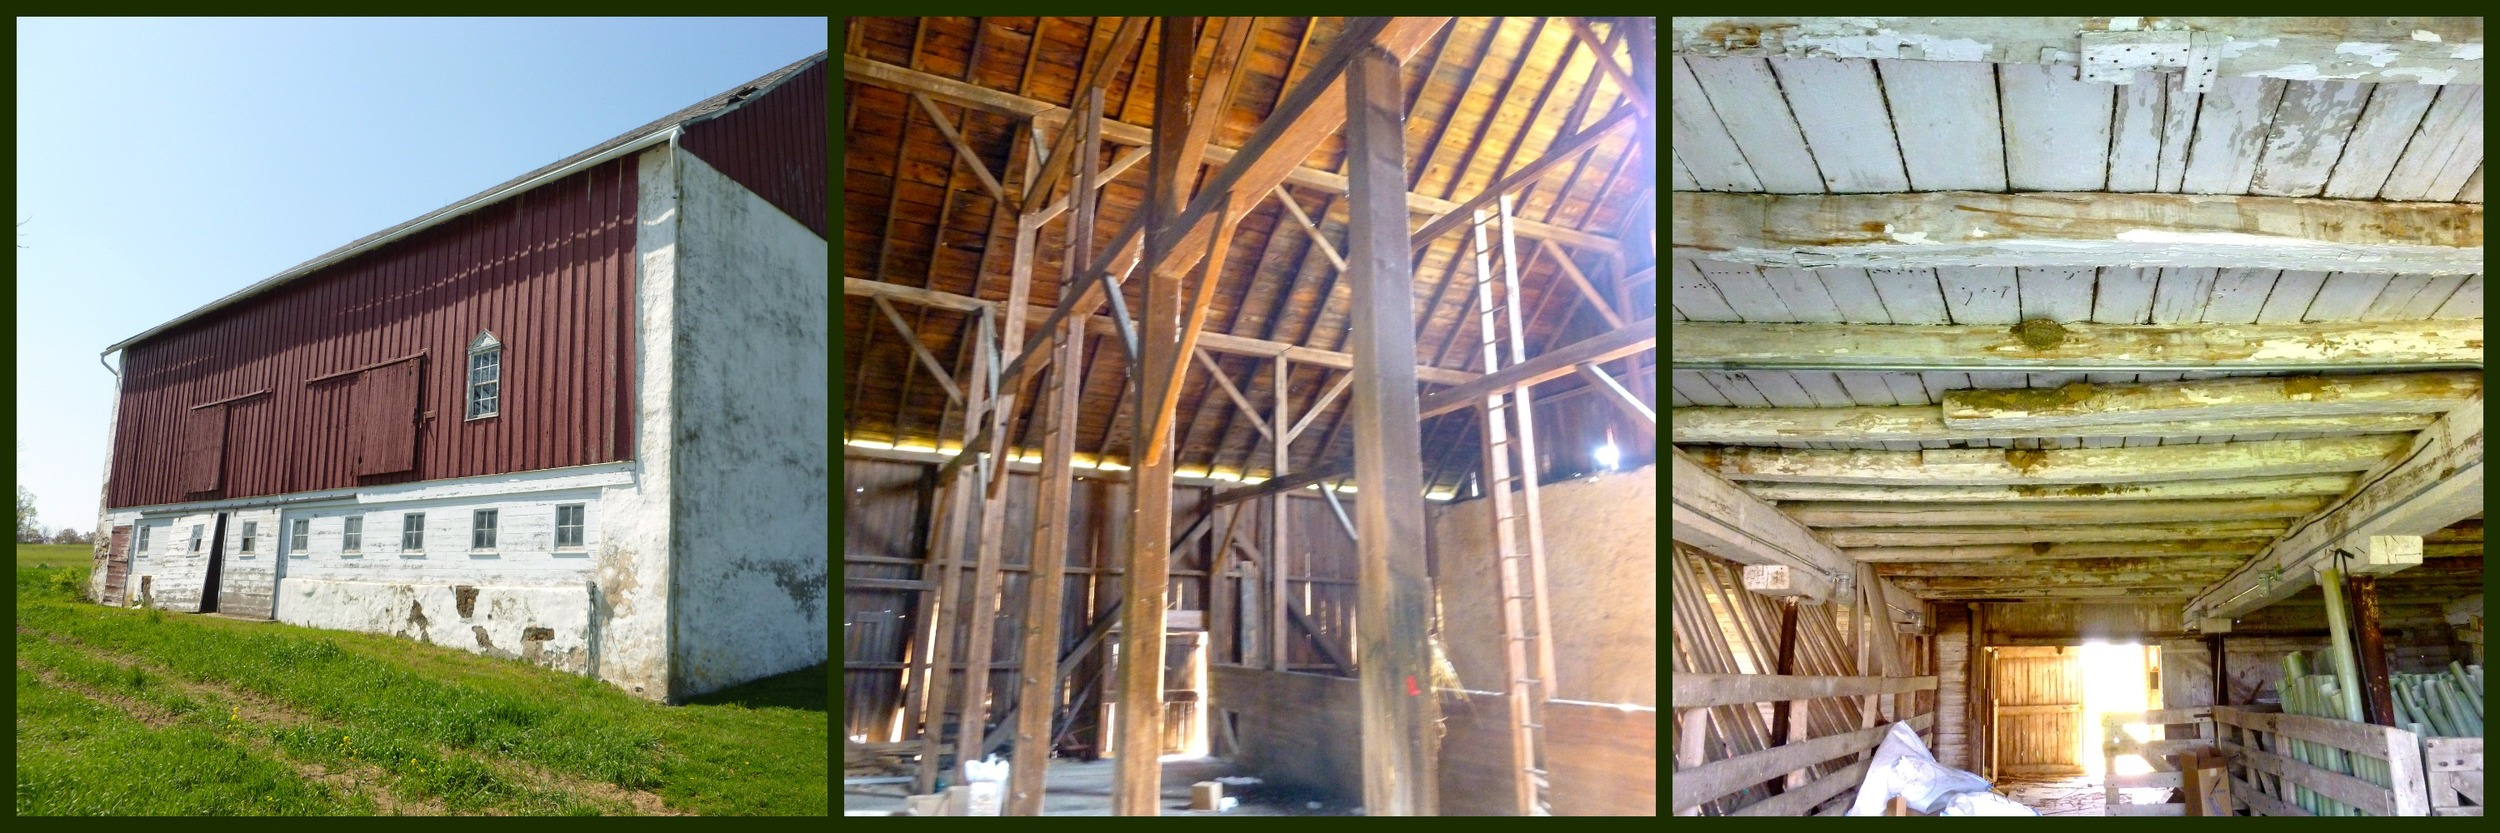 The timber framing is breathtaking.